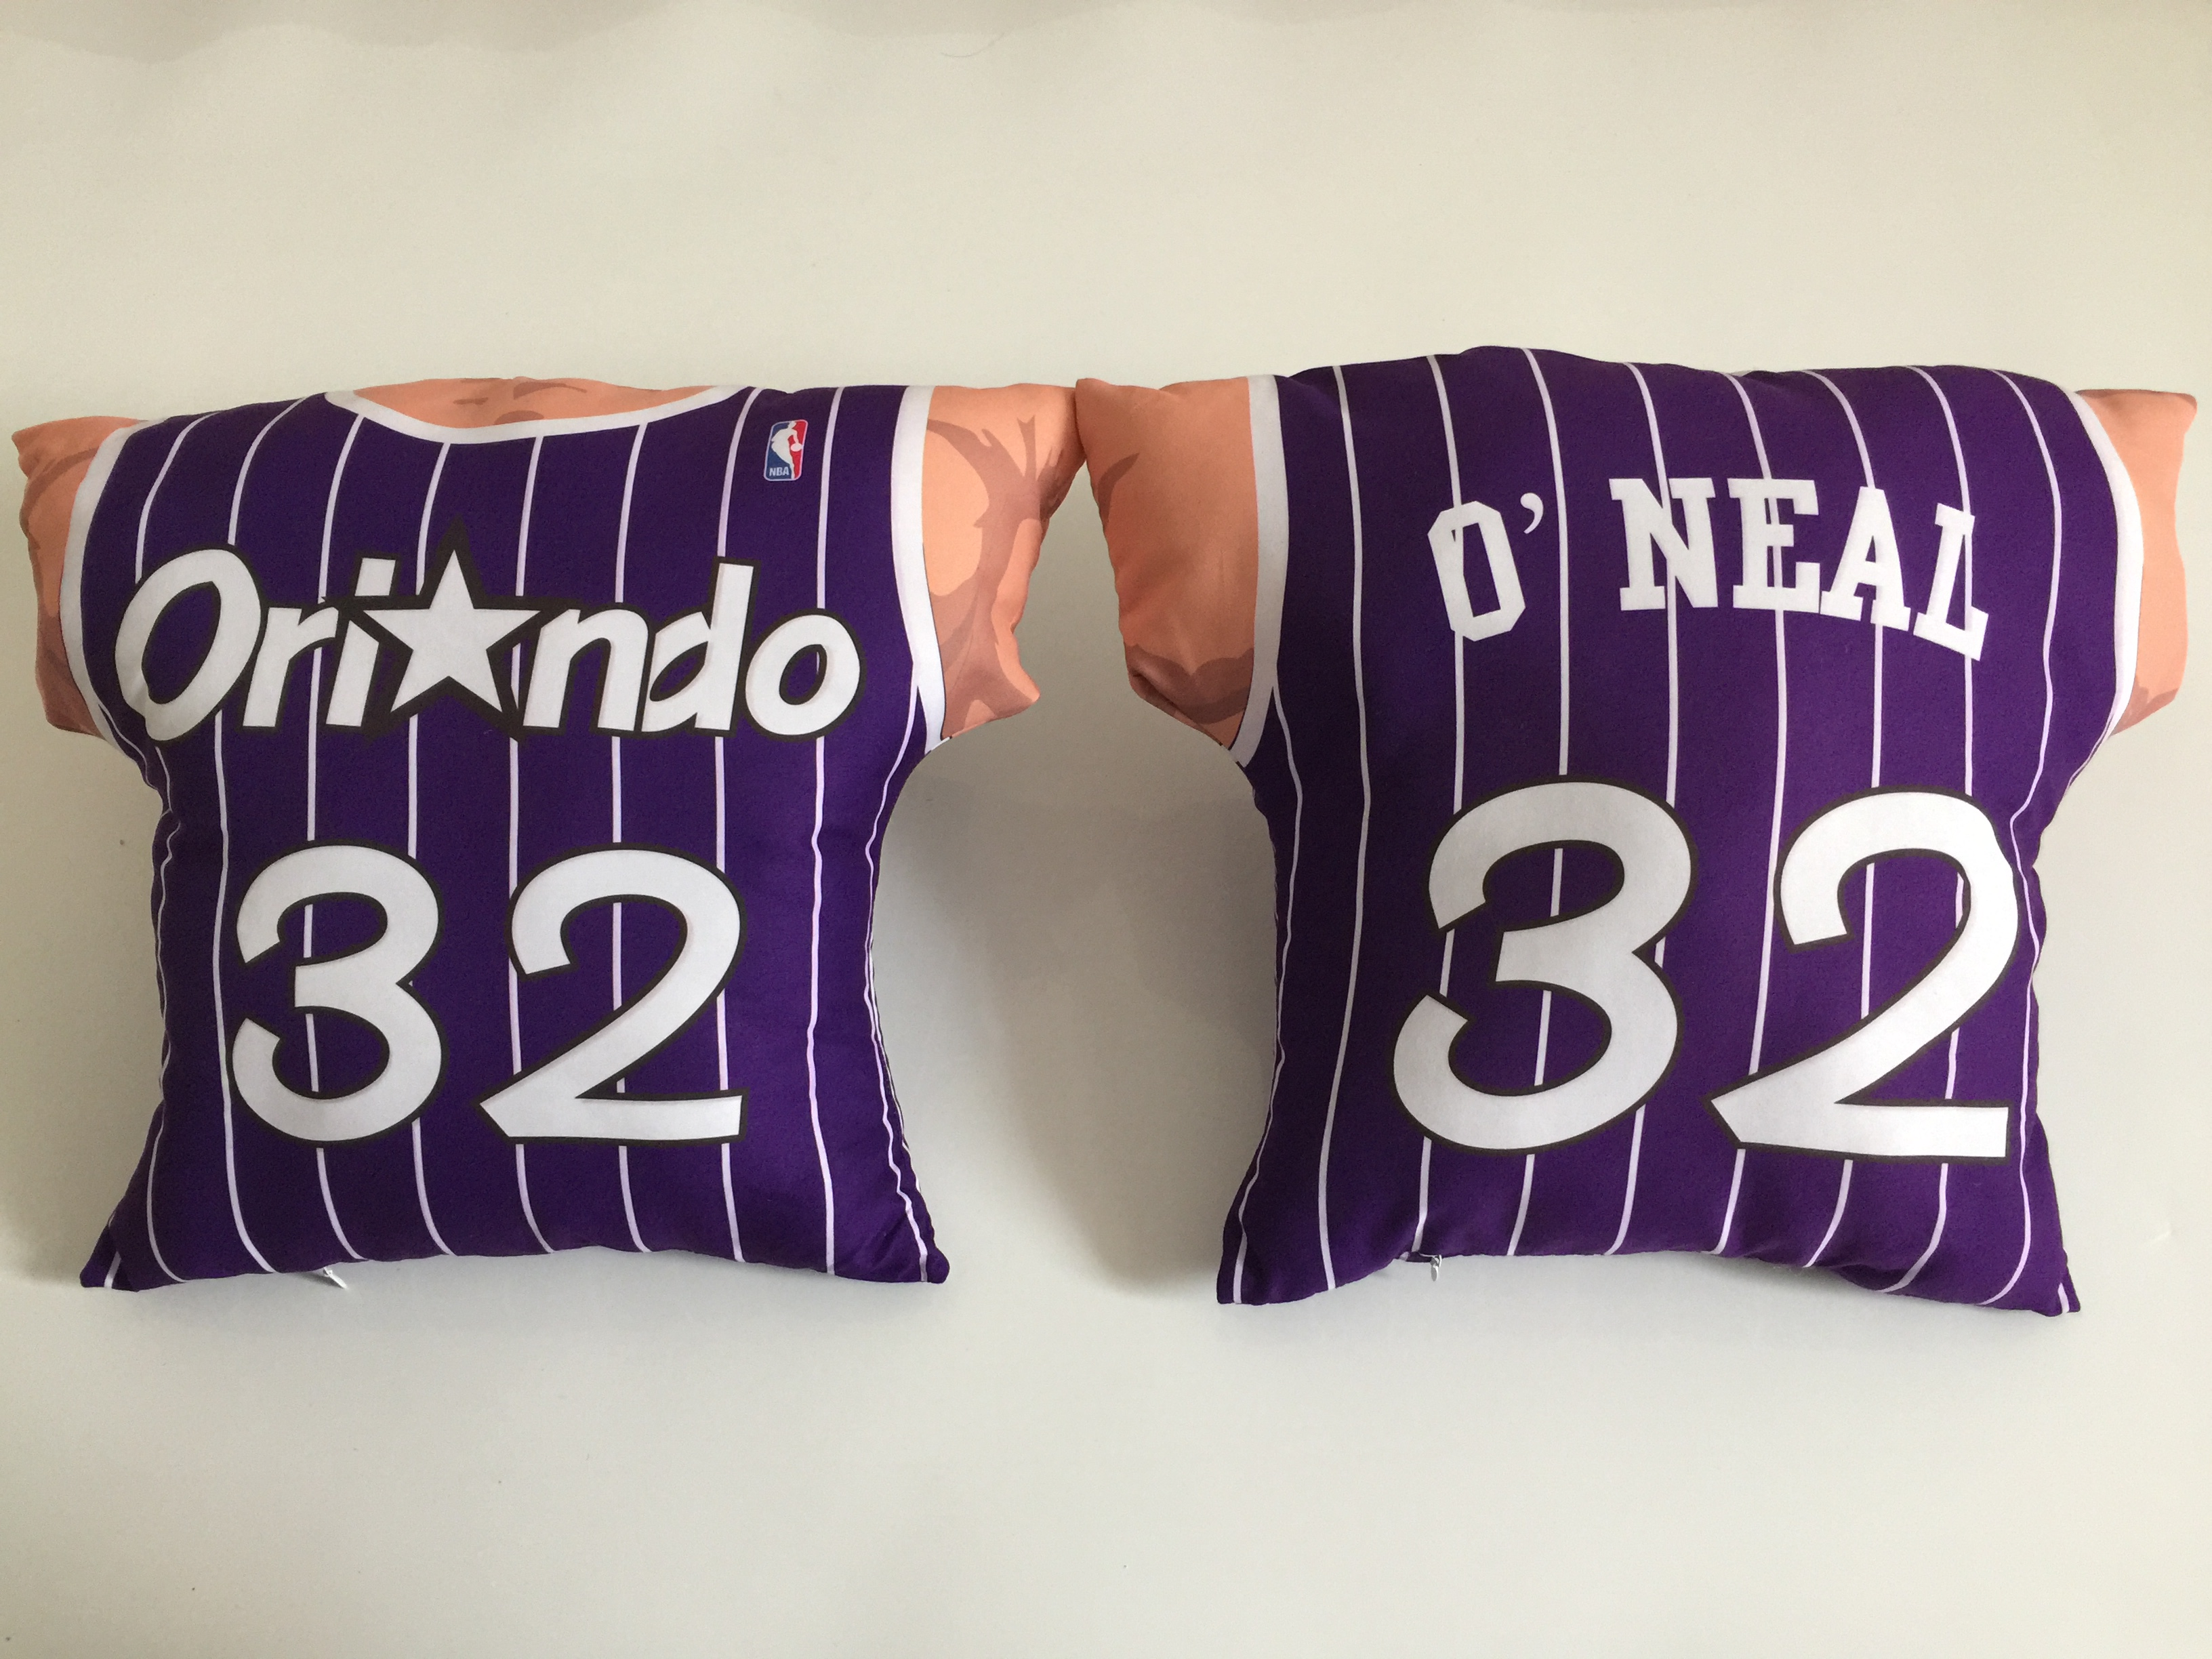 Orlando Magic 32 Shaquille O'Neal Purple NBA Pillow